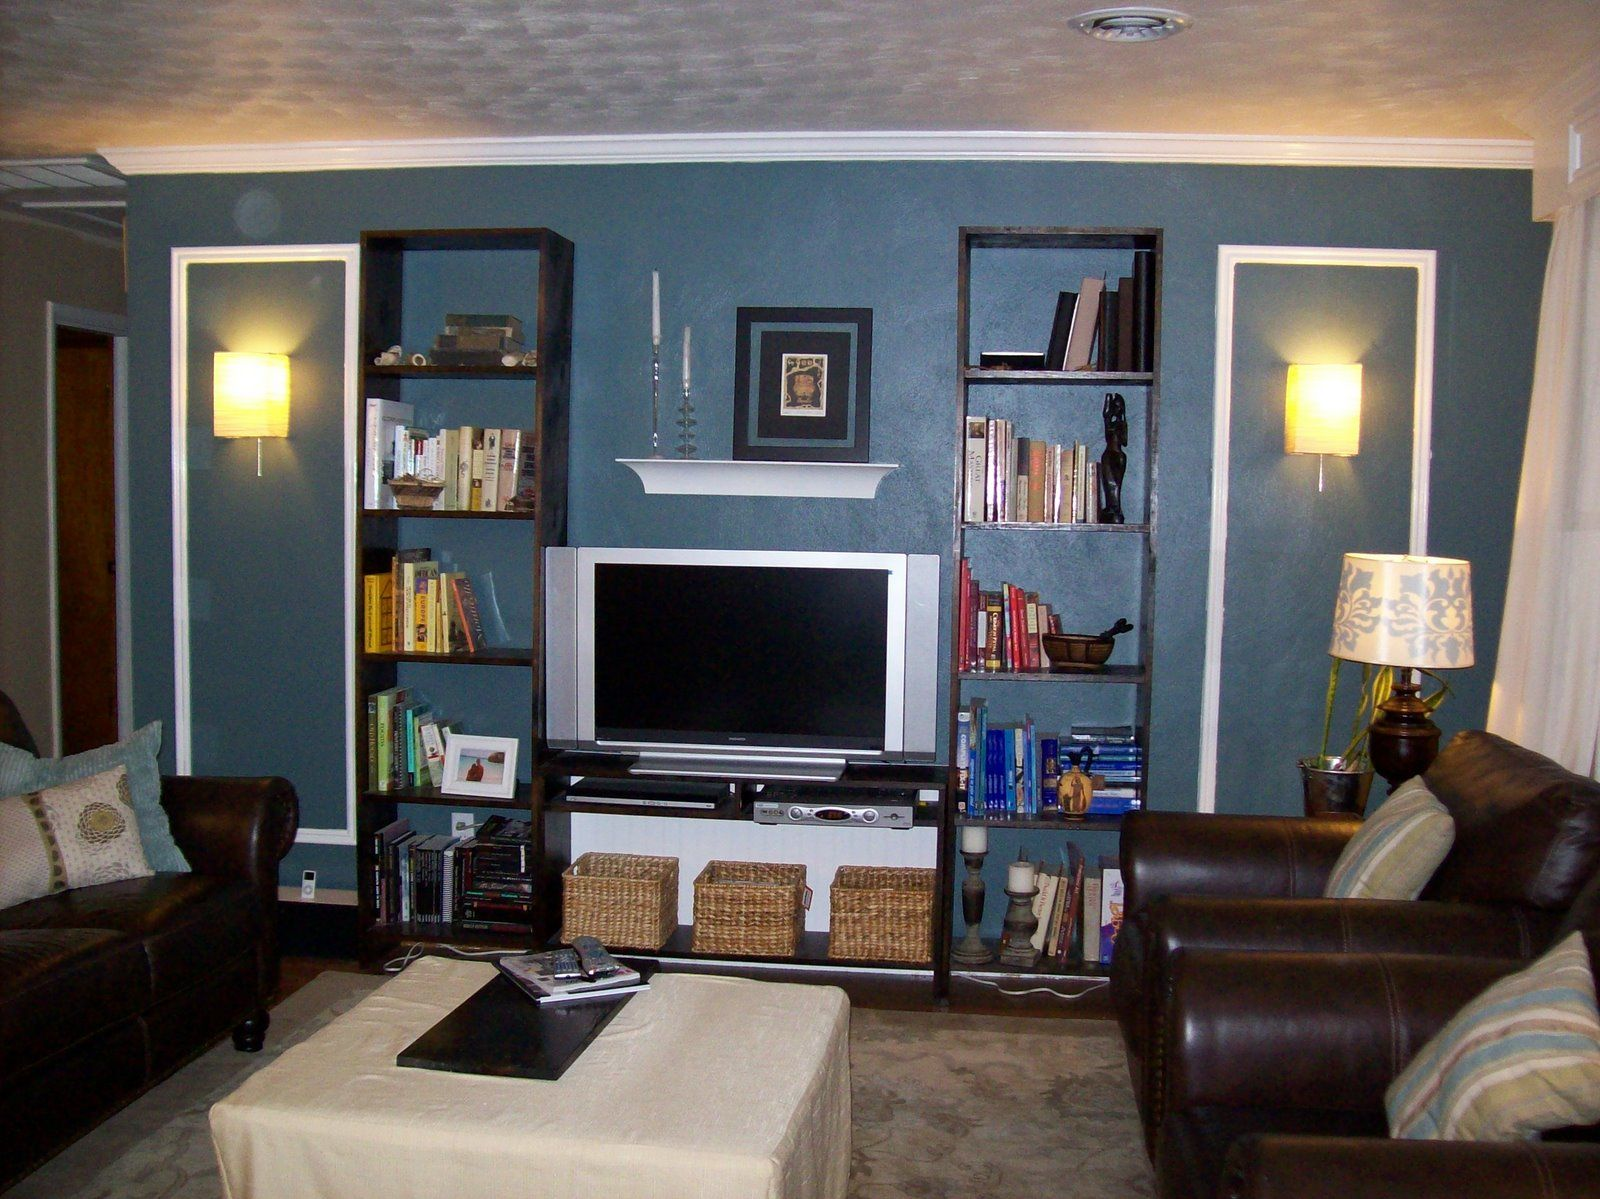 living room in blue%0A We updated our Family Room by adding panel molding and crown molding to the  walls  Molding around the entrance to the dining room  and addi